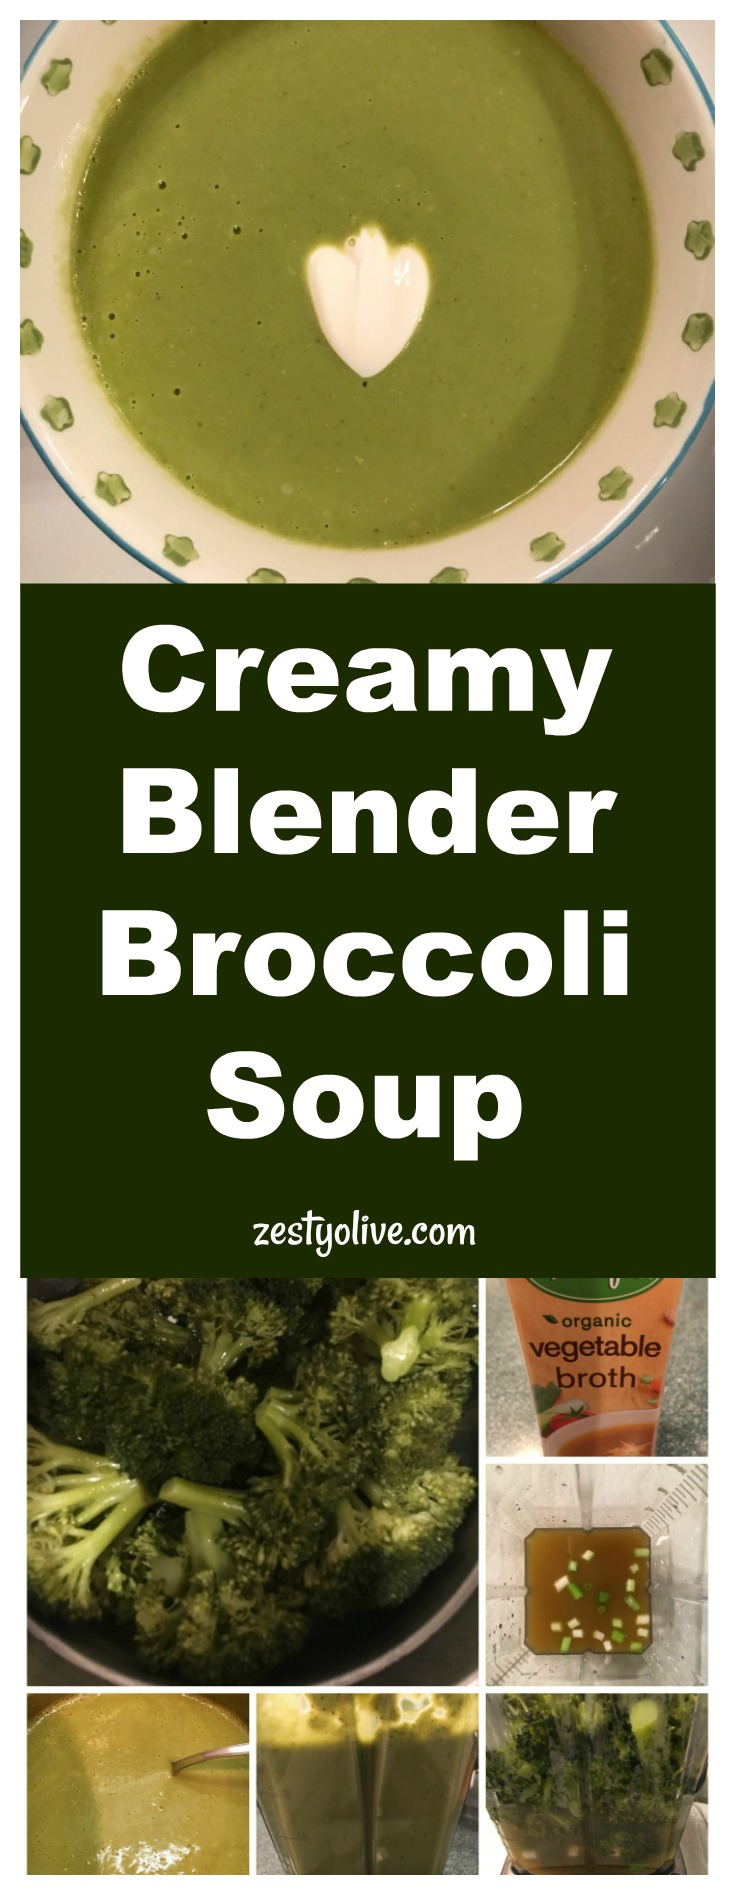 Broccoli is the star of this green, healthy soup. Preparation is quick and easy, so you can have this creamy broccoli soup on the table in about 15 minutes.